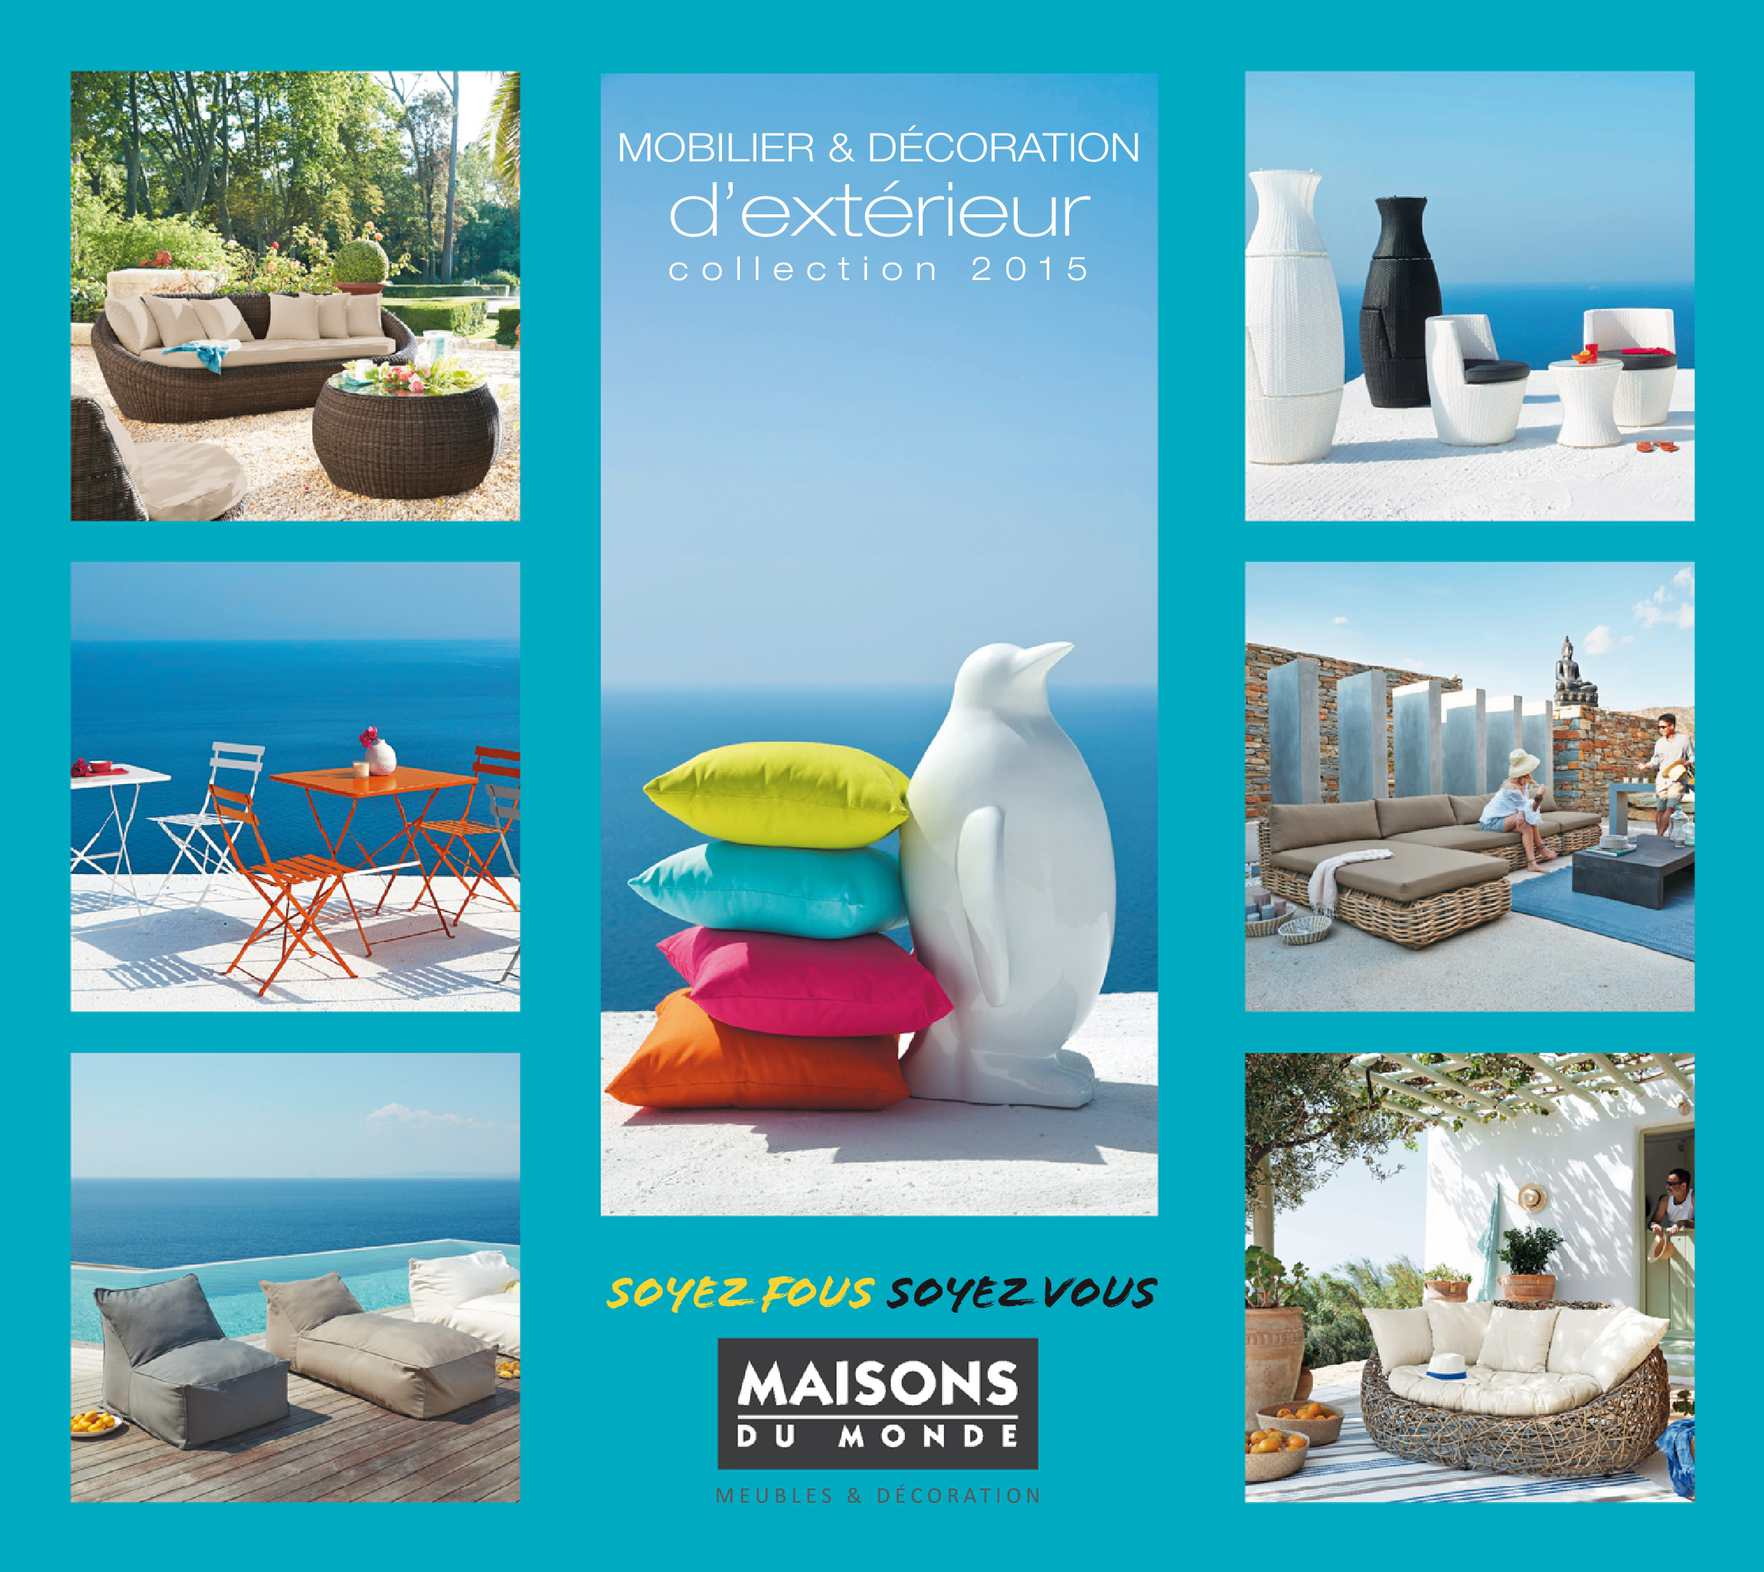 Calam o catalogo maisons du monde outdoor 2015 for Maison du monde outdoor